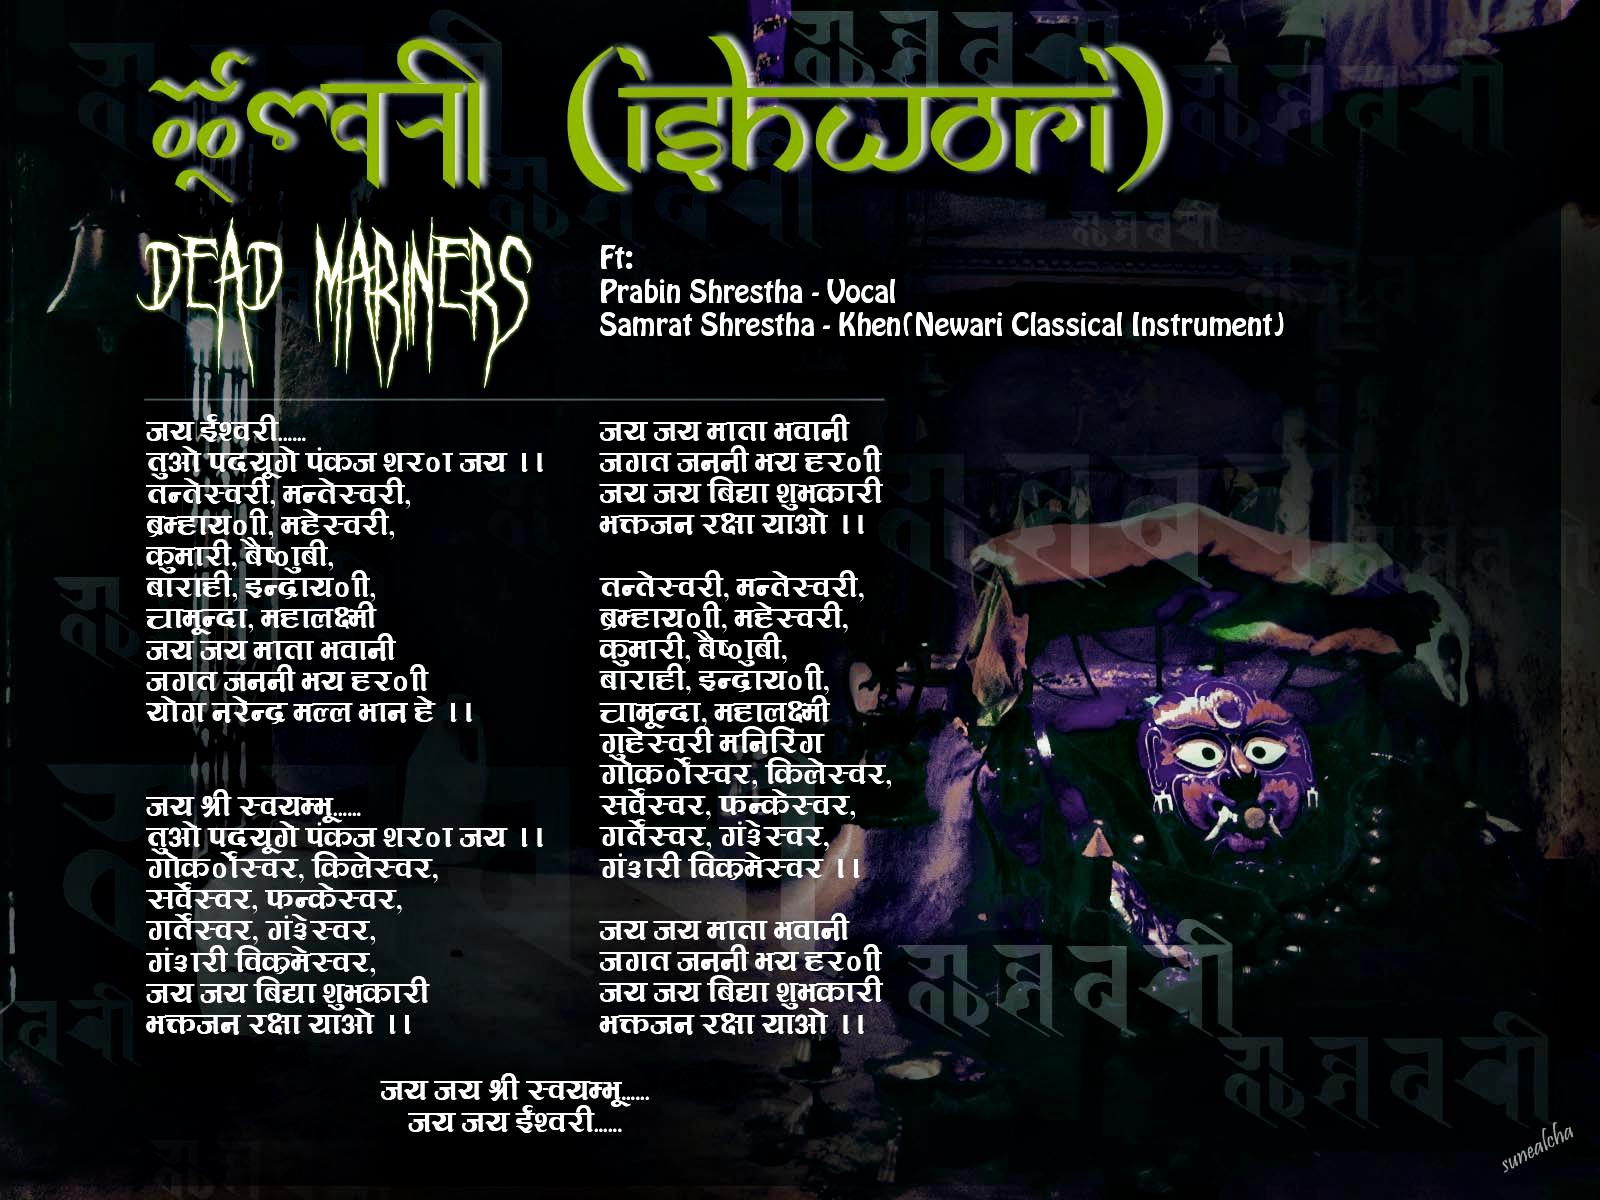 Dead Mariners Ishwori Song Lyrics